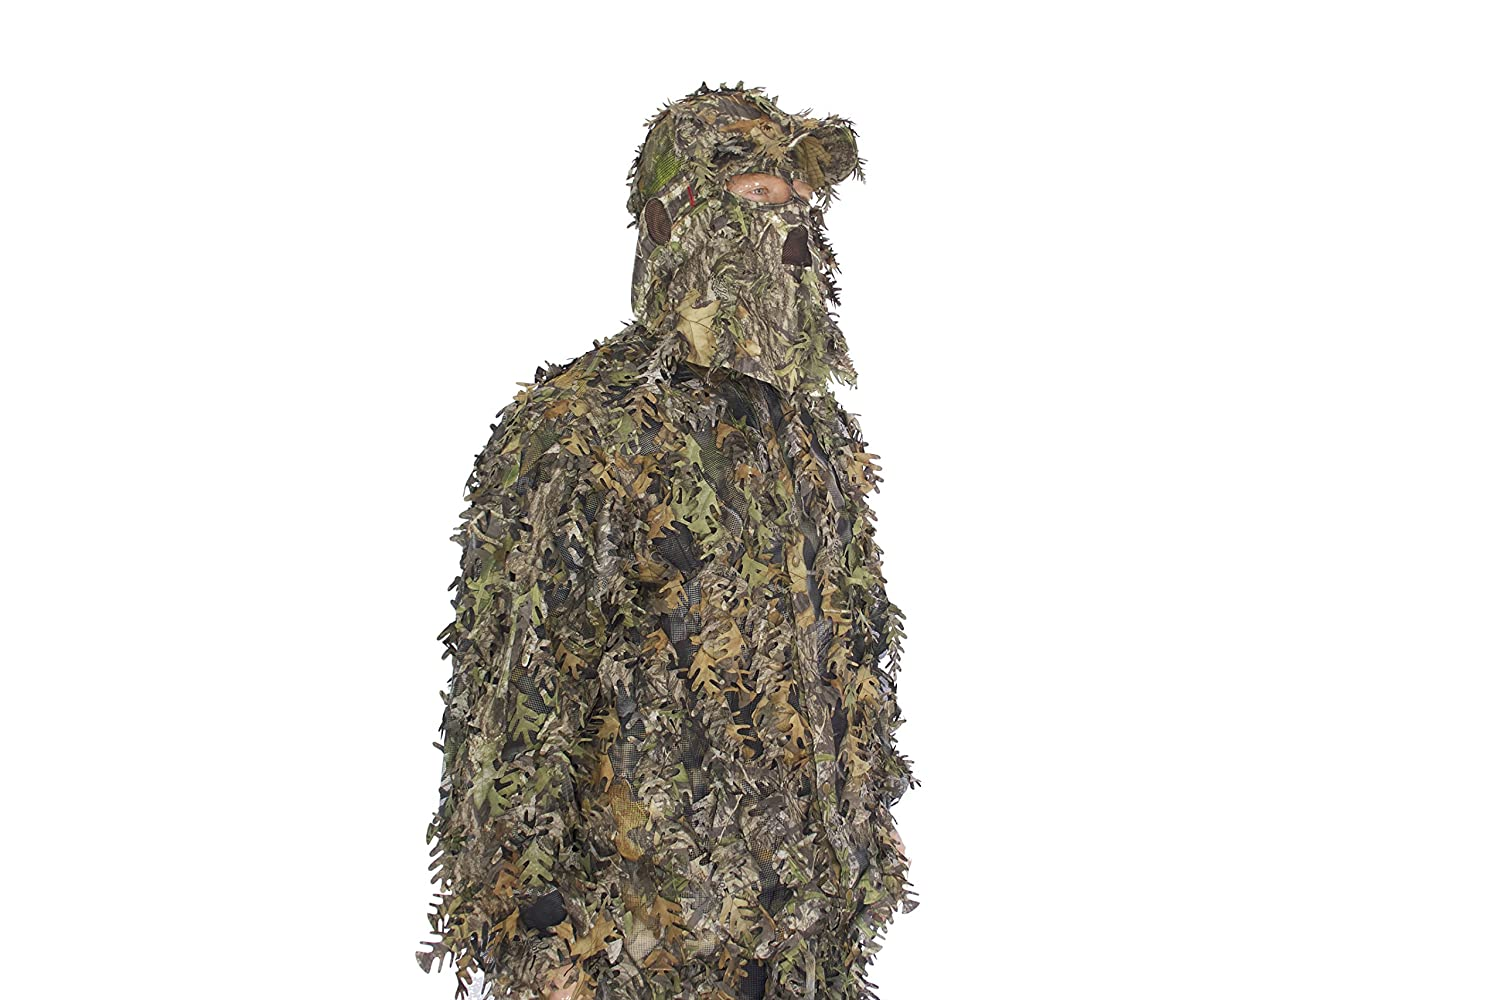 Mossy Oak Obsession b-3d LeafyメッシュGhillie Suit with帽子とマスクコンボ含ま B07767XCT1 Large/XL